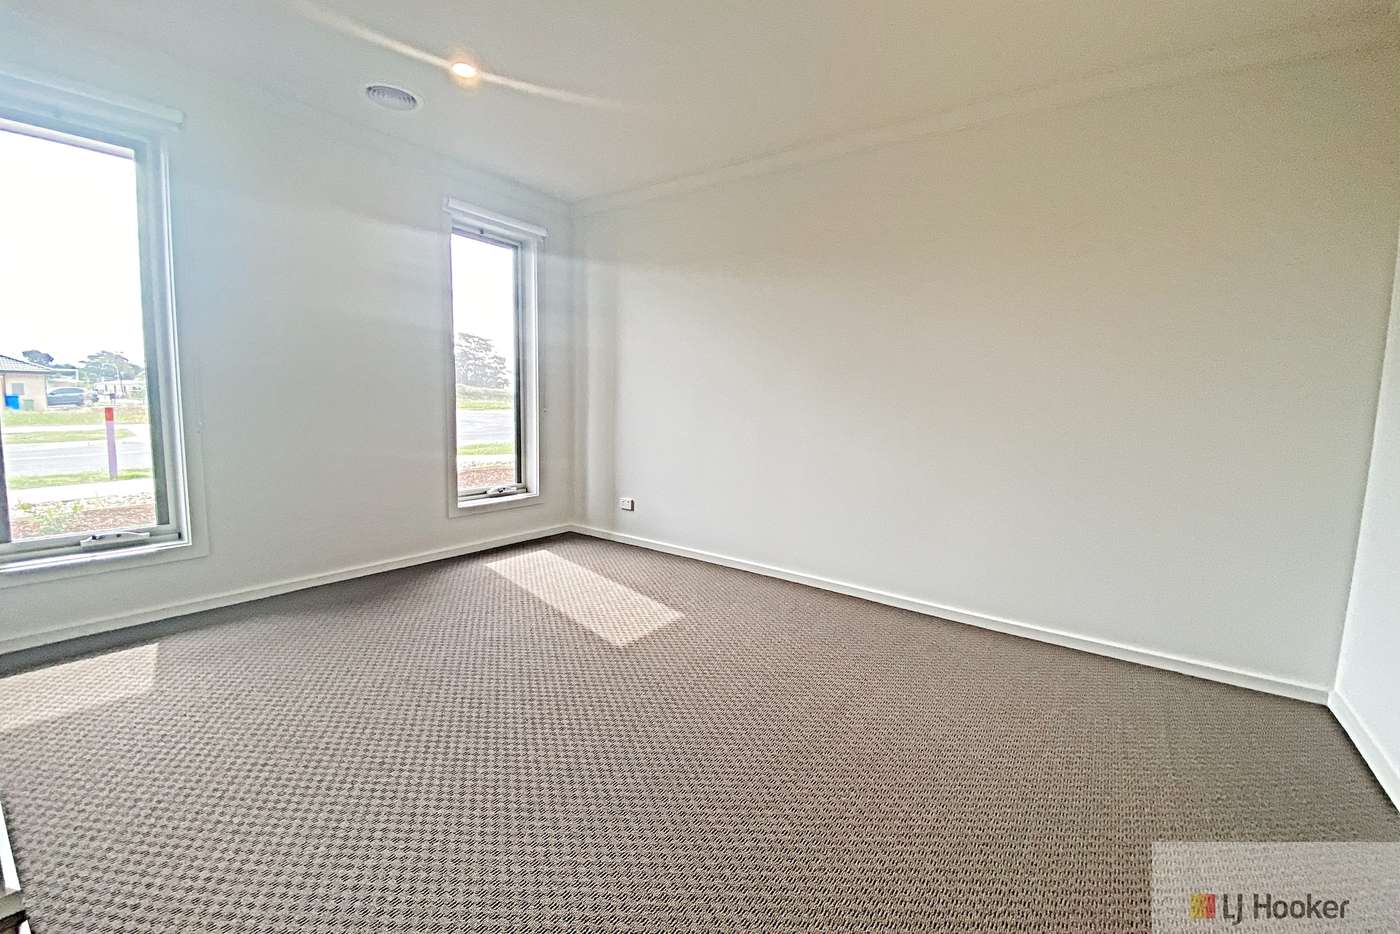 Sixth view of Homely house listing, 1 Redding Street, Cranbourne East VIC 3977